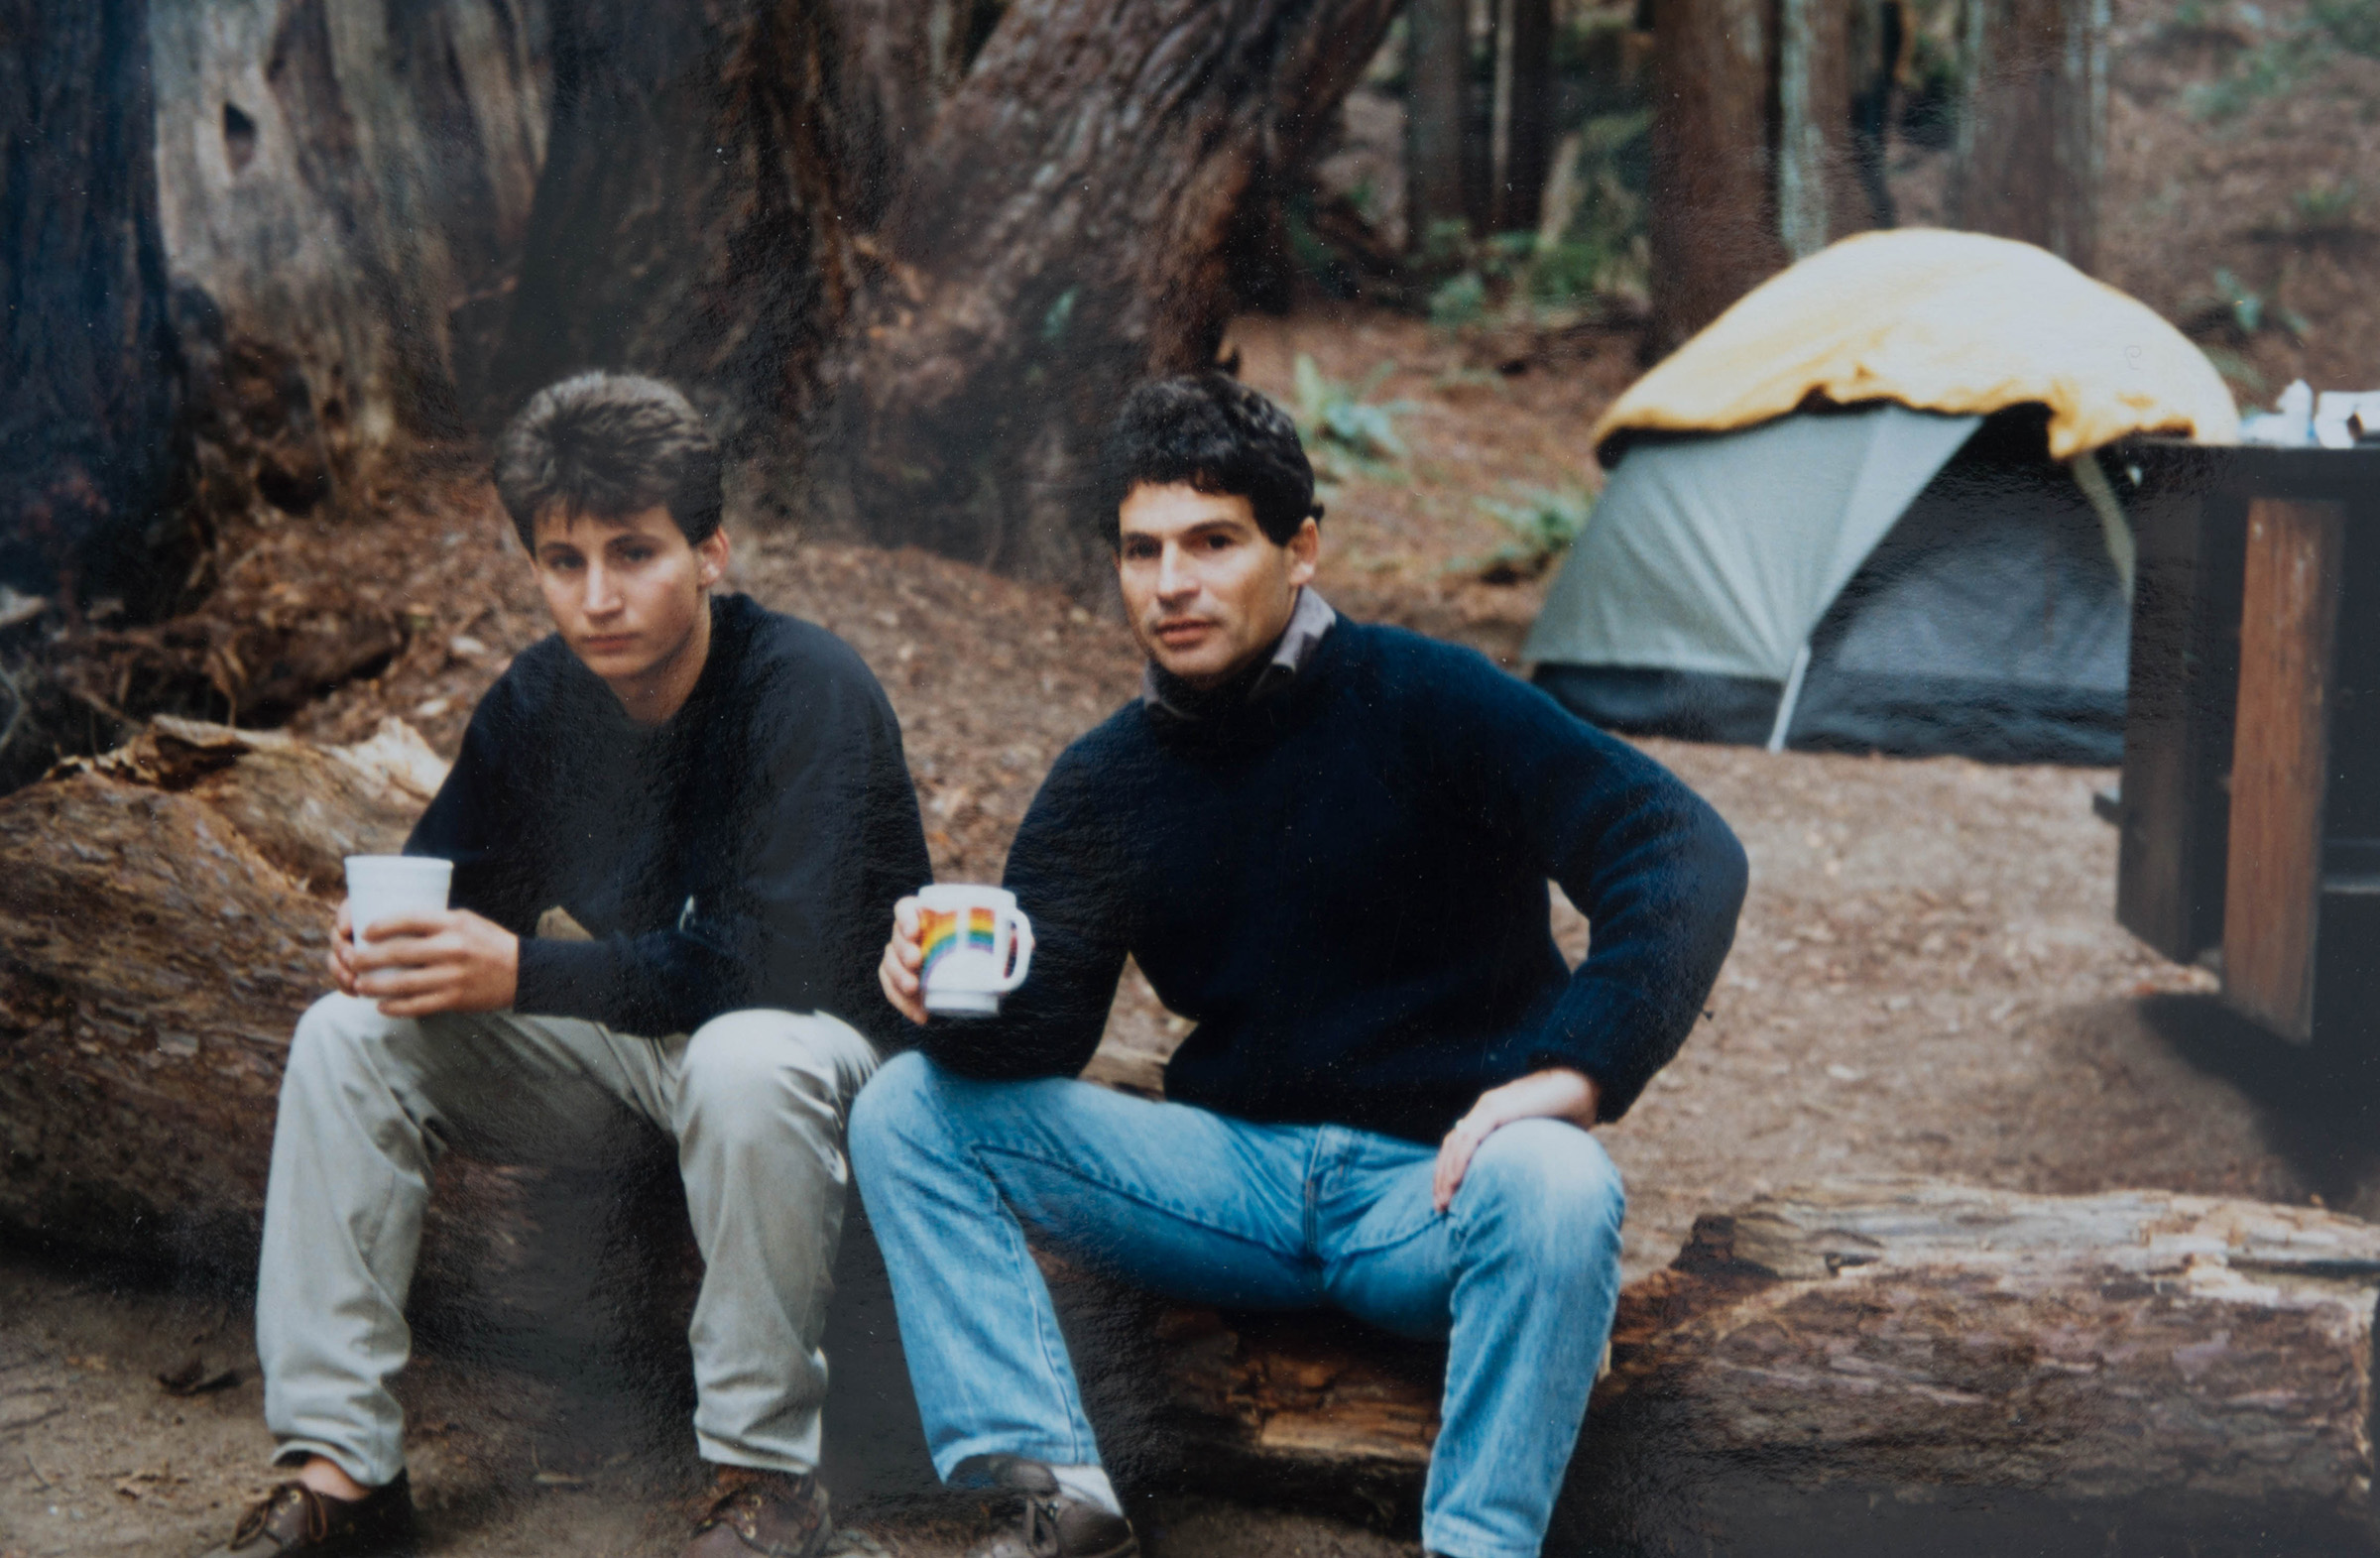 camping with dimitri in n. california in the '80's